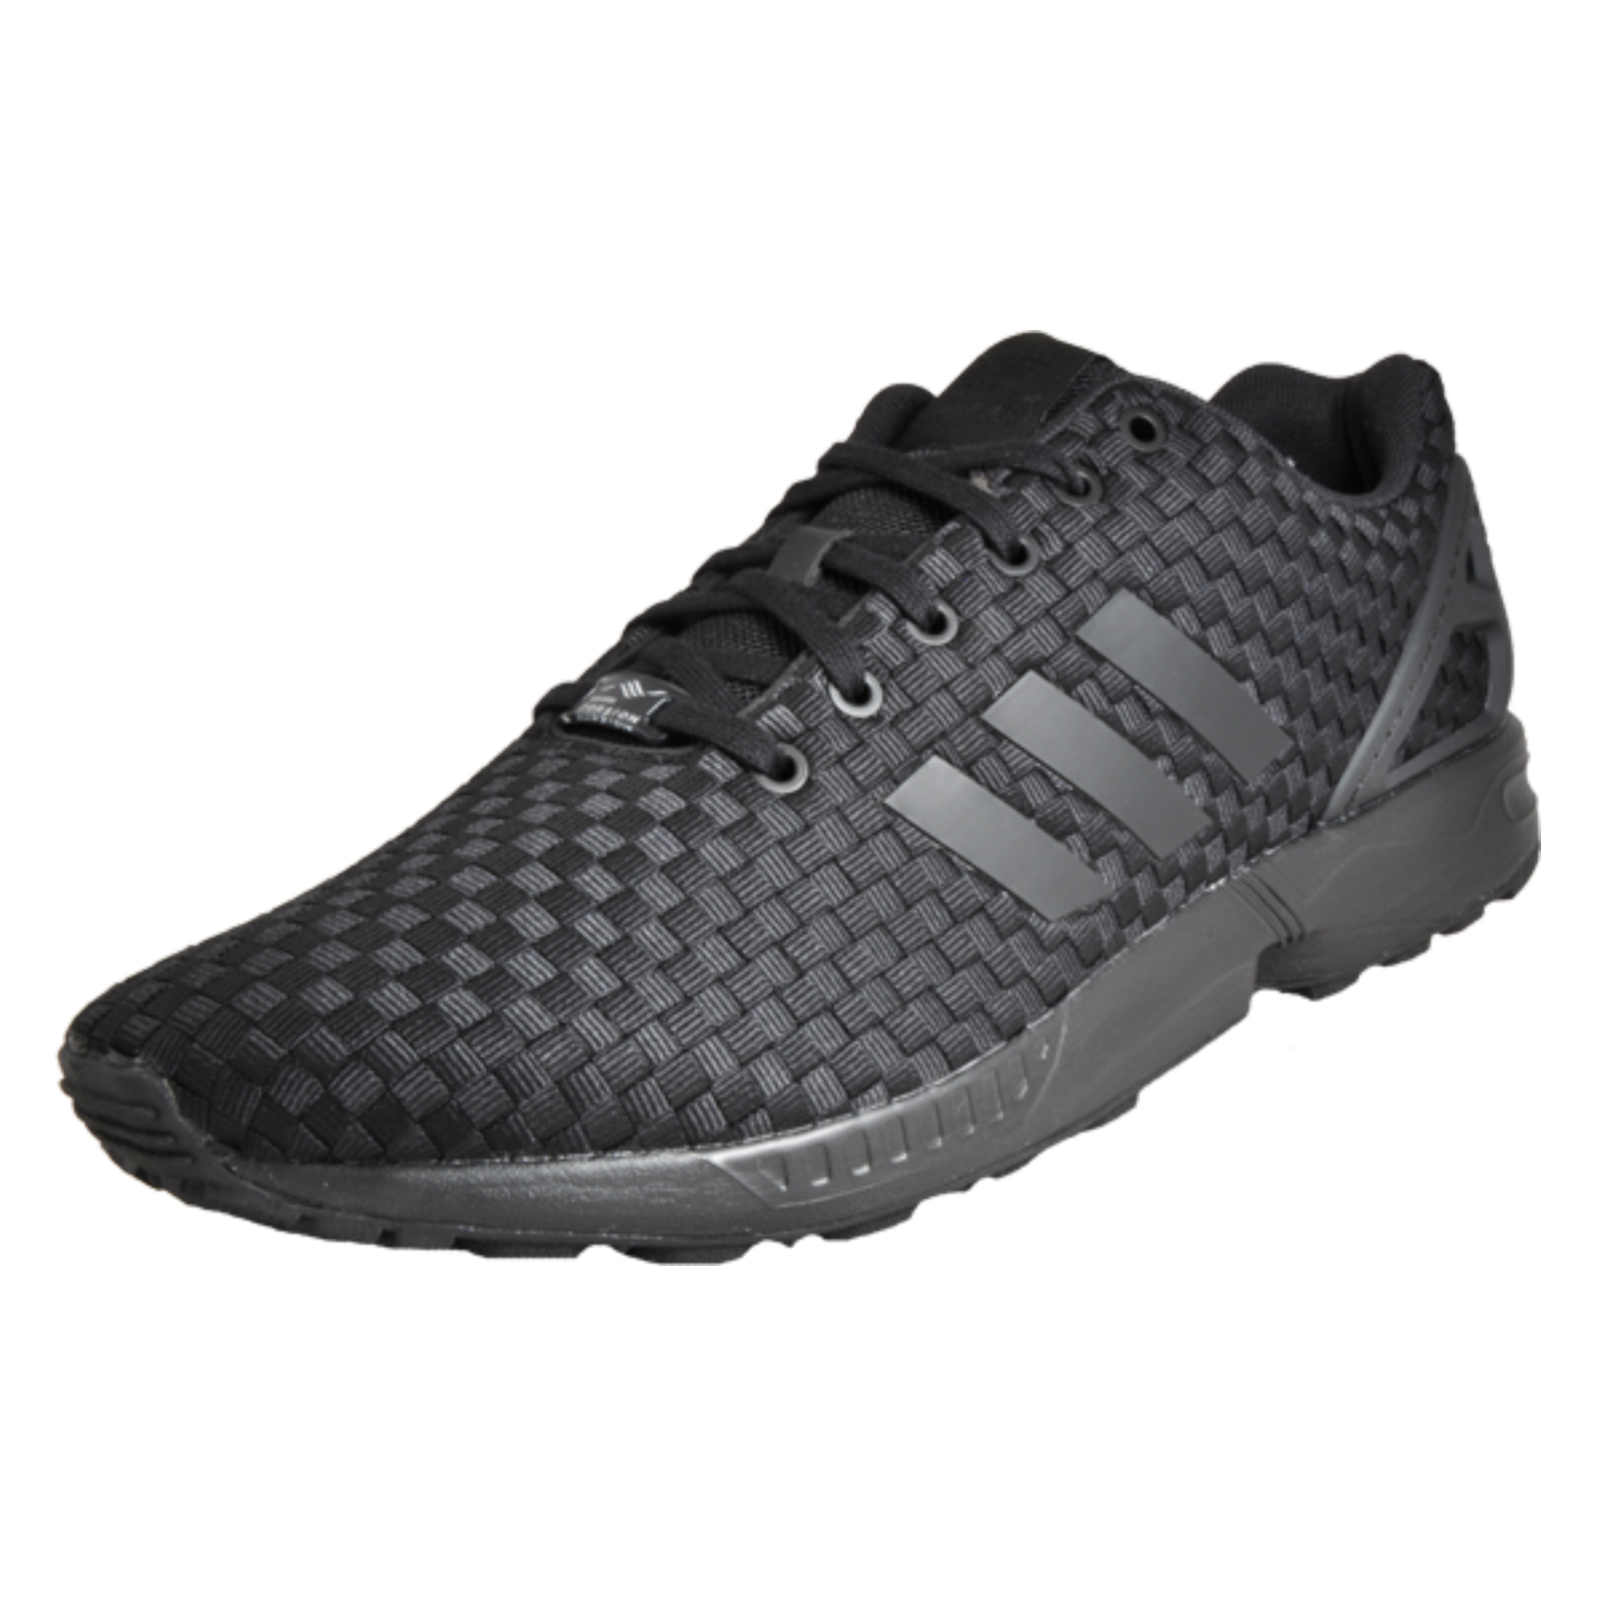 508d812d61510 Details about Adidas Originals ZX Flux Men s Casual Fitness Gym Trainers  Core Black UK 13 Only